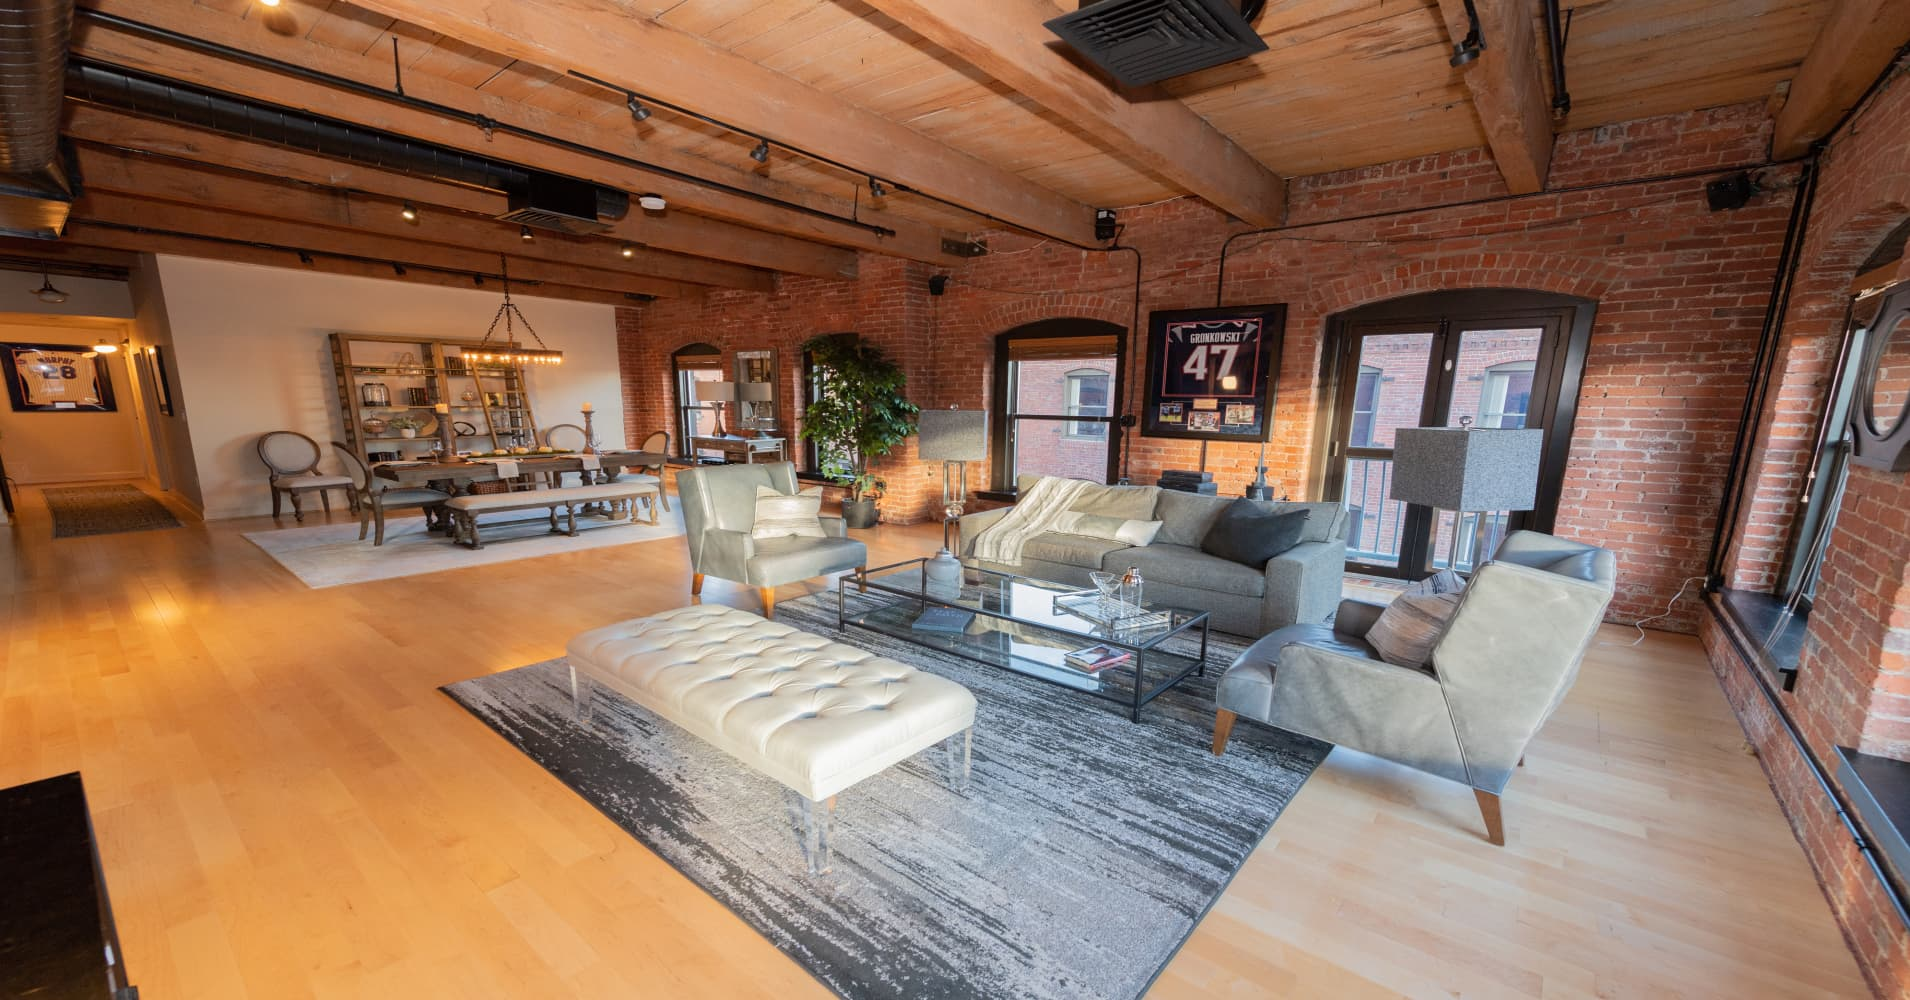 Rob 'Gronk' Gronkowski just sold his Boston penthouse for $2.3 million — take a look inside